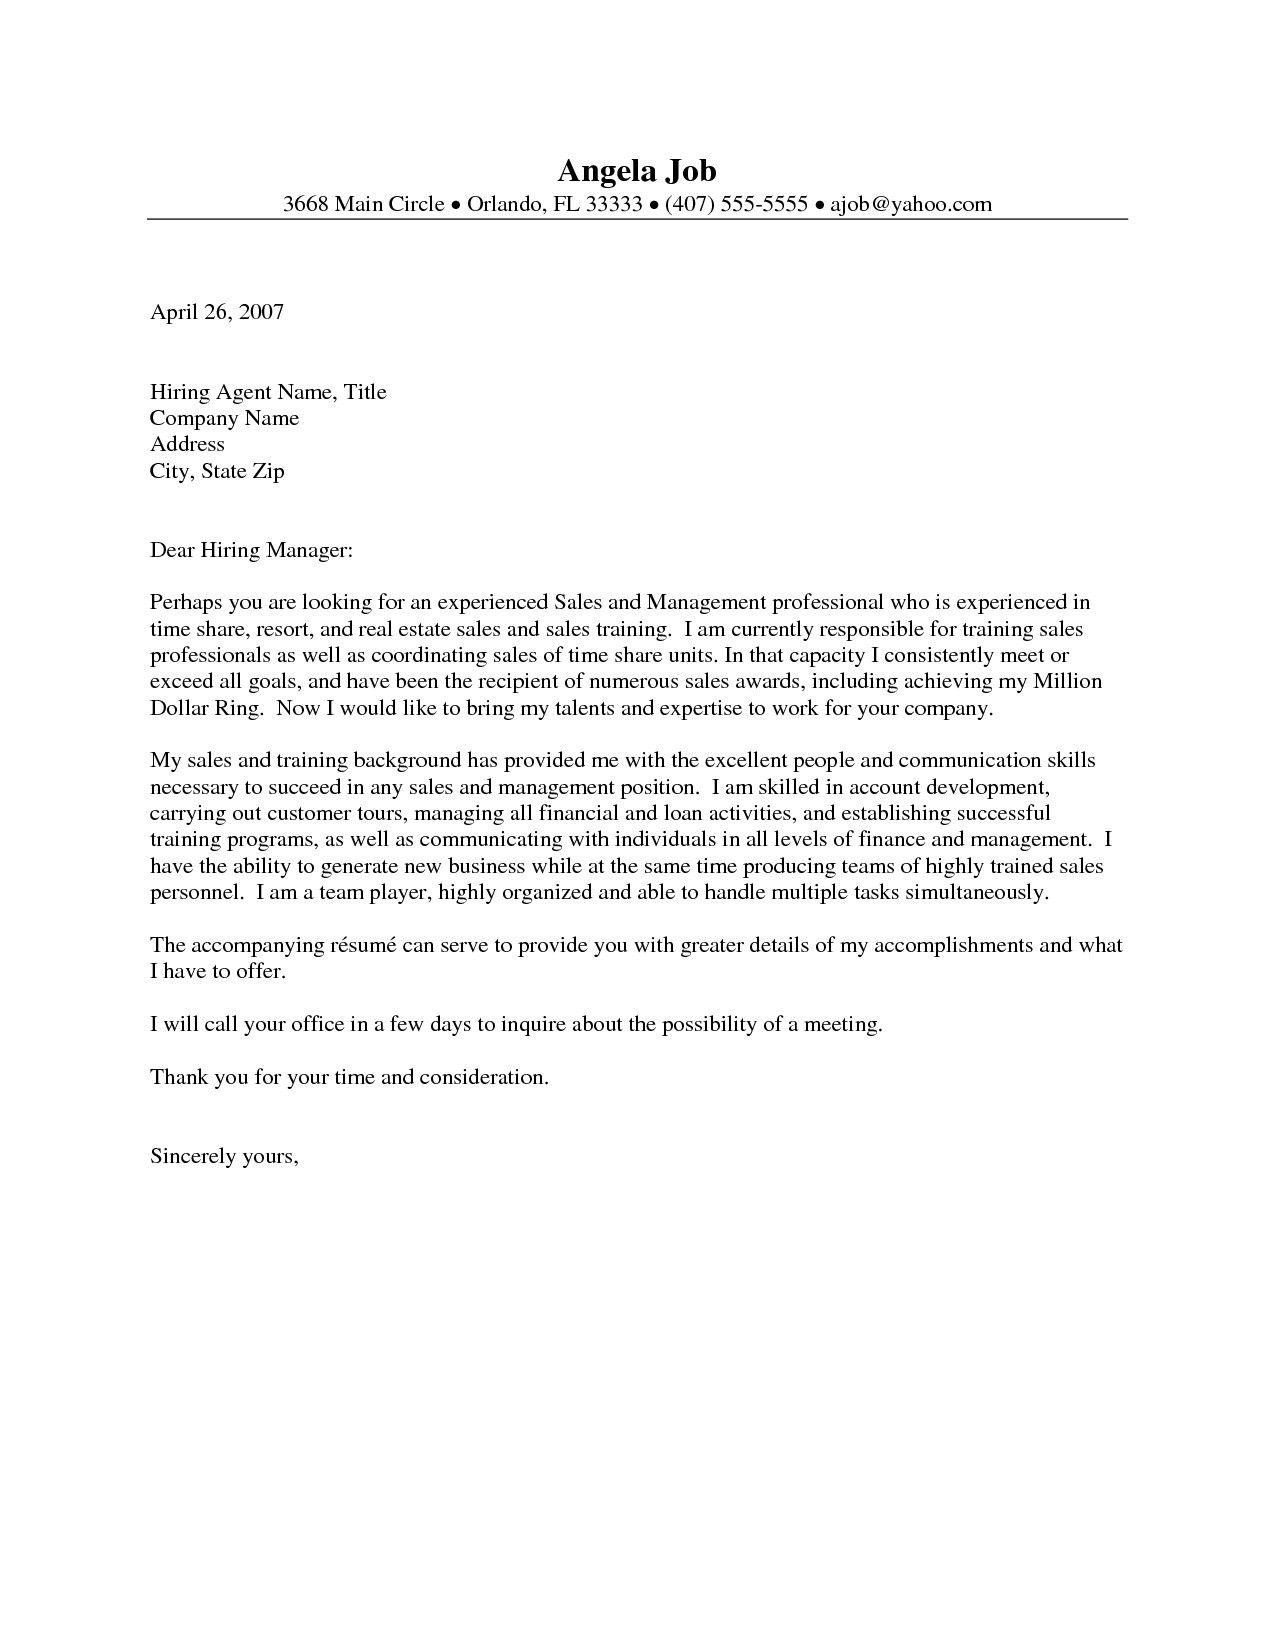 For Sale by Owner Offer Letter Template - Awesome Real Estate Fer Letter Template